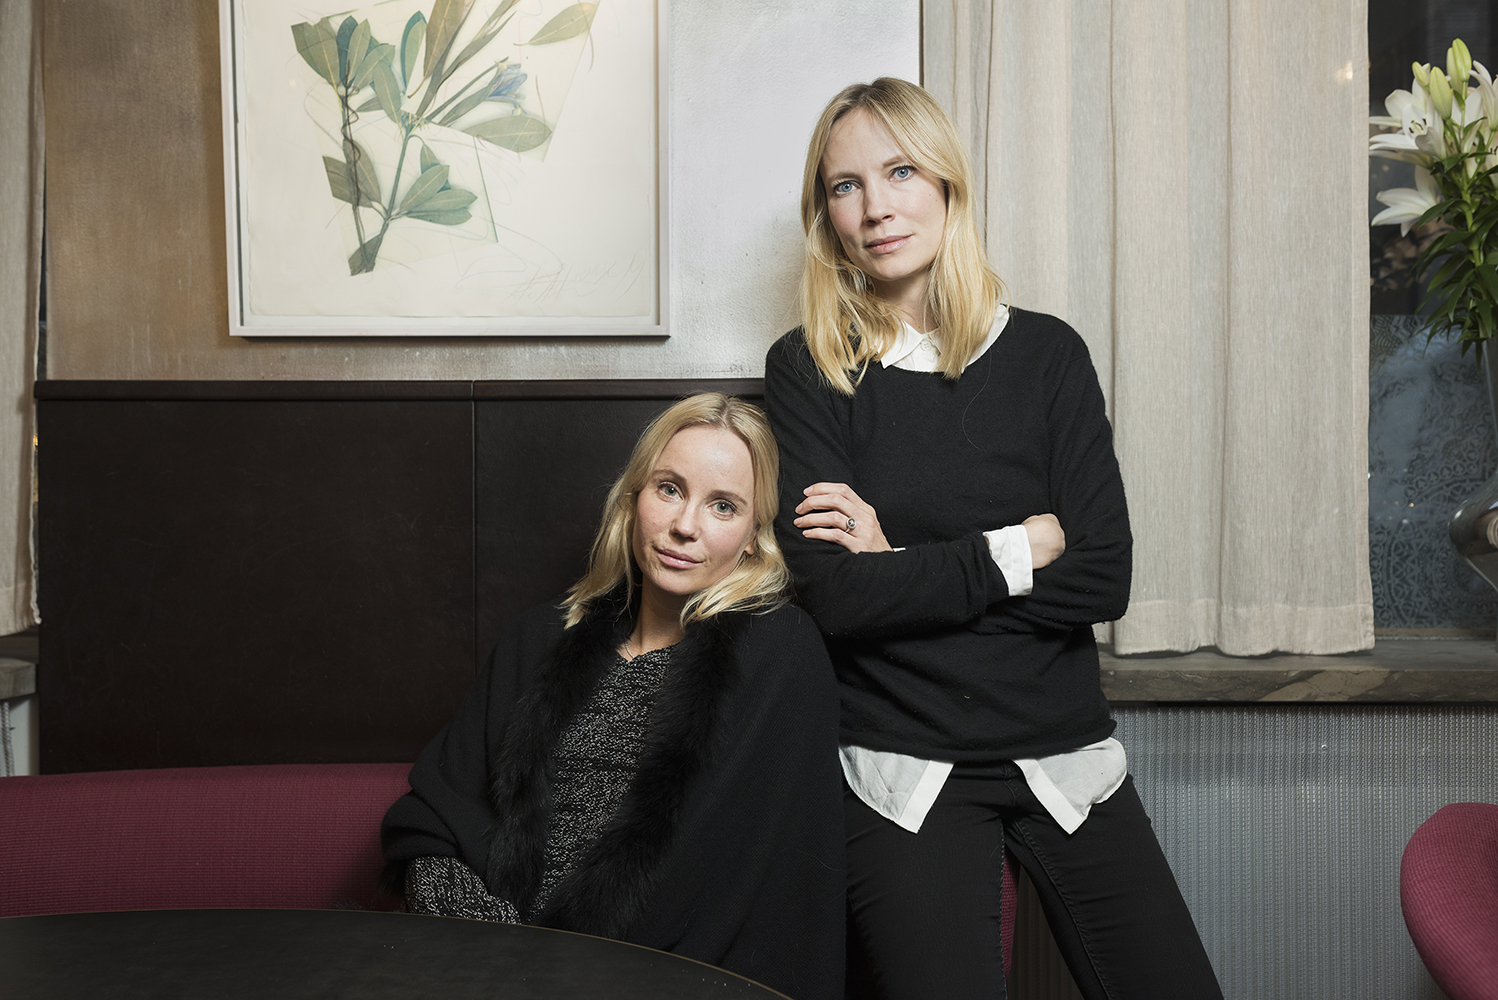 Portrait of actors Sofia Helin and Moa Gammel for a reportage about the #metoo movement in Sweden. Client: Der Spiegel